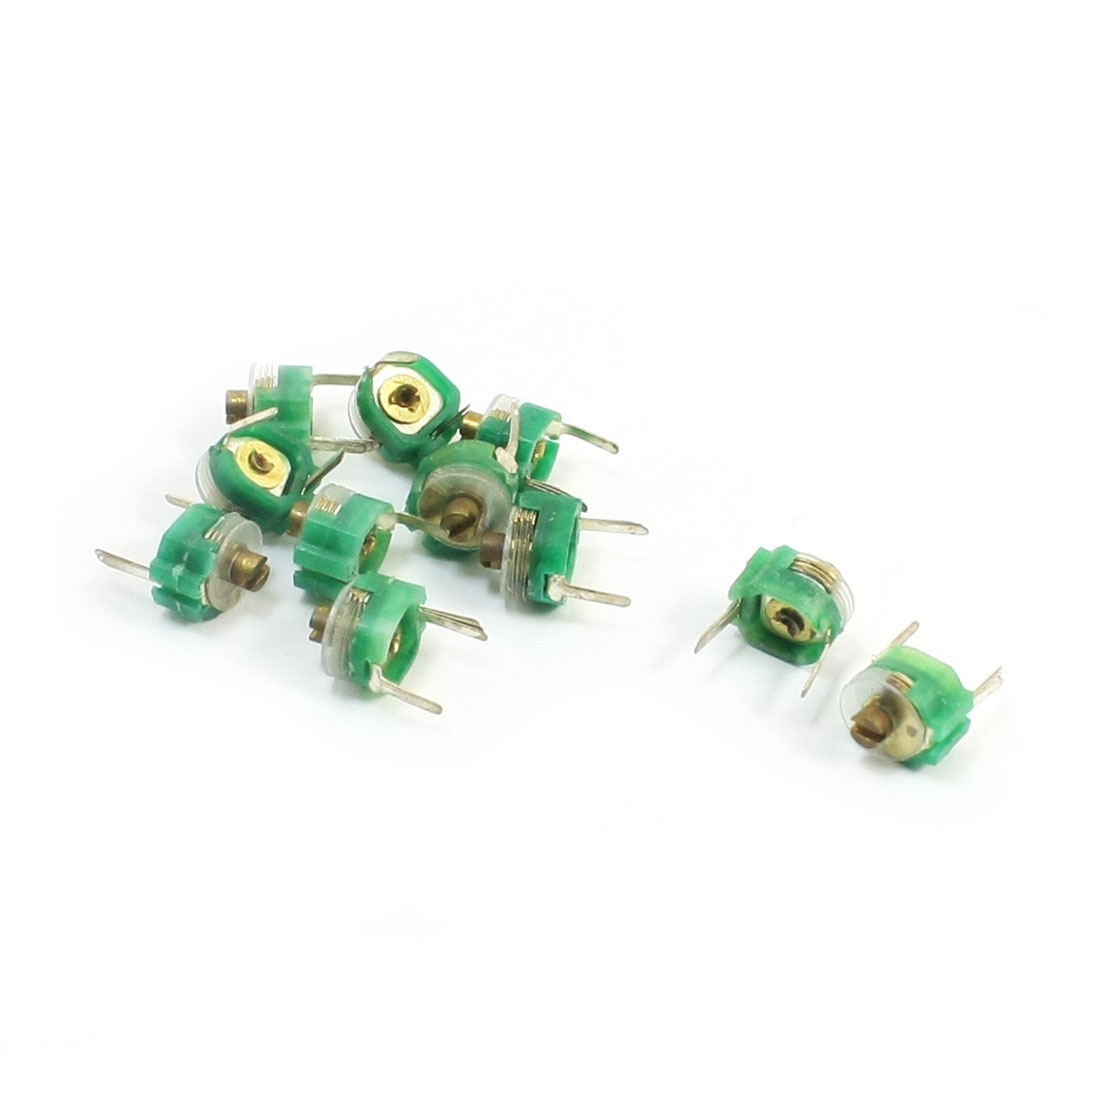 10 Pcs Green Electronic Components PCB Single Turn Variable Trimmer Capacitor 10PF